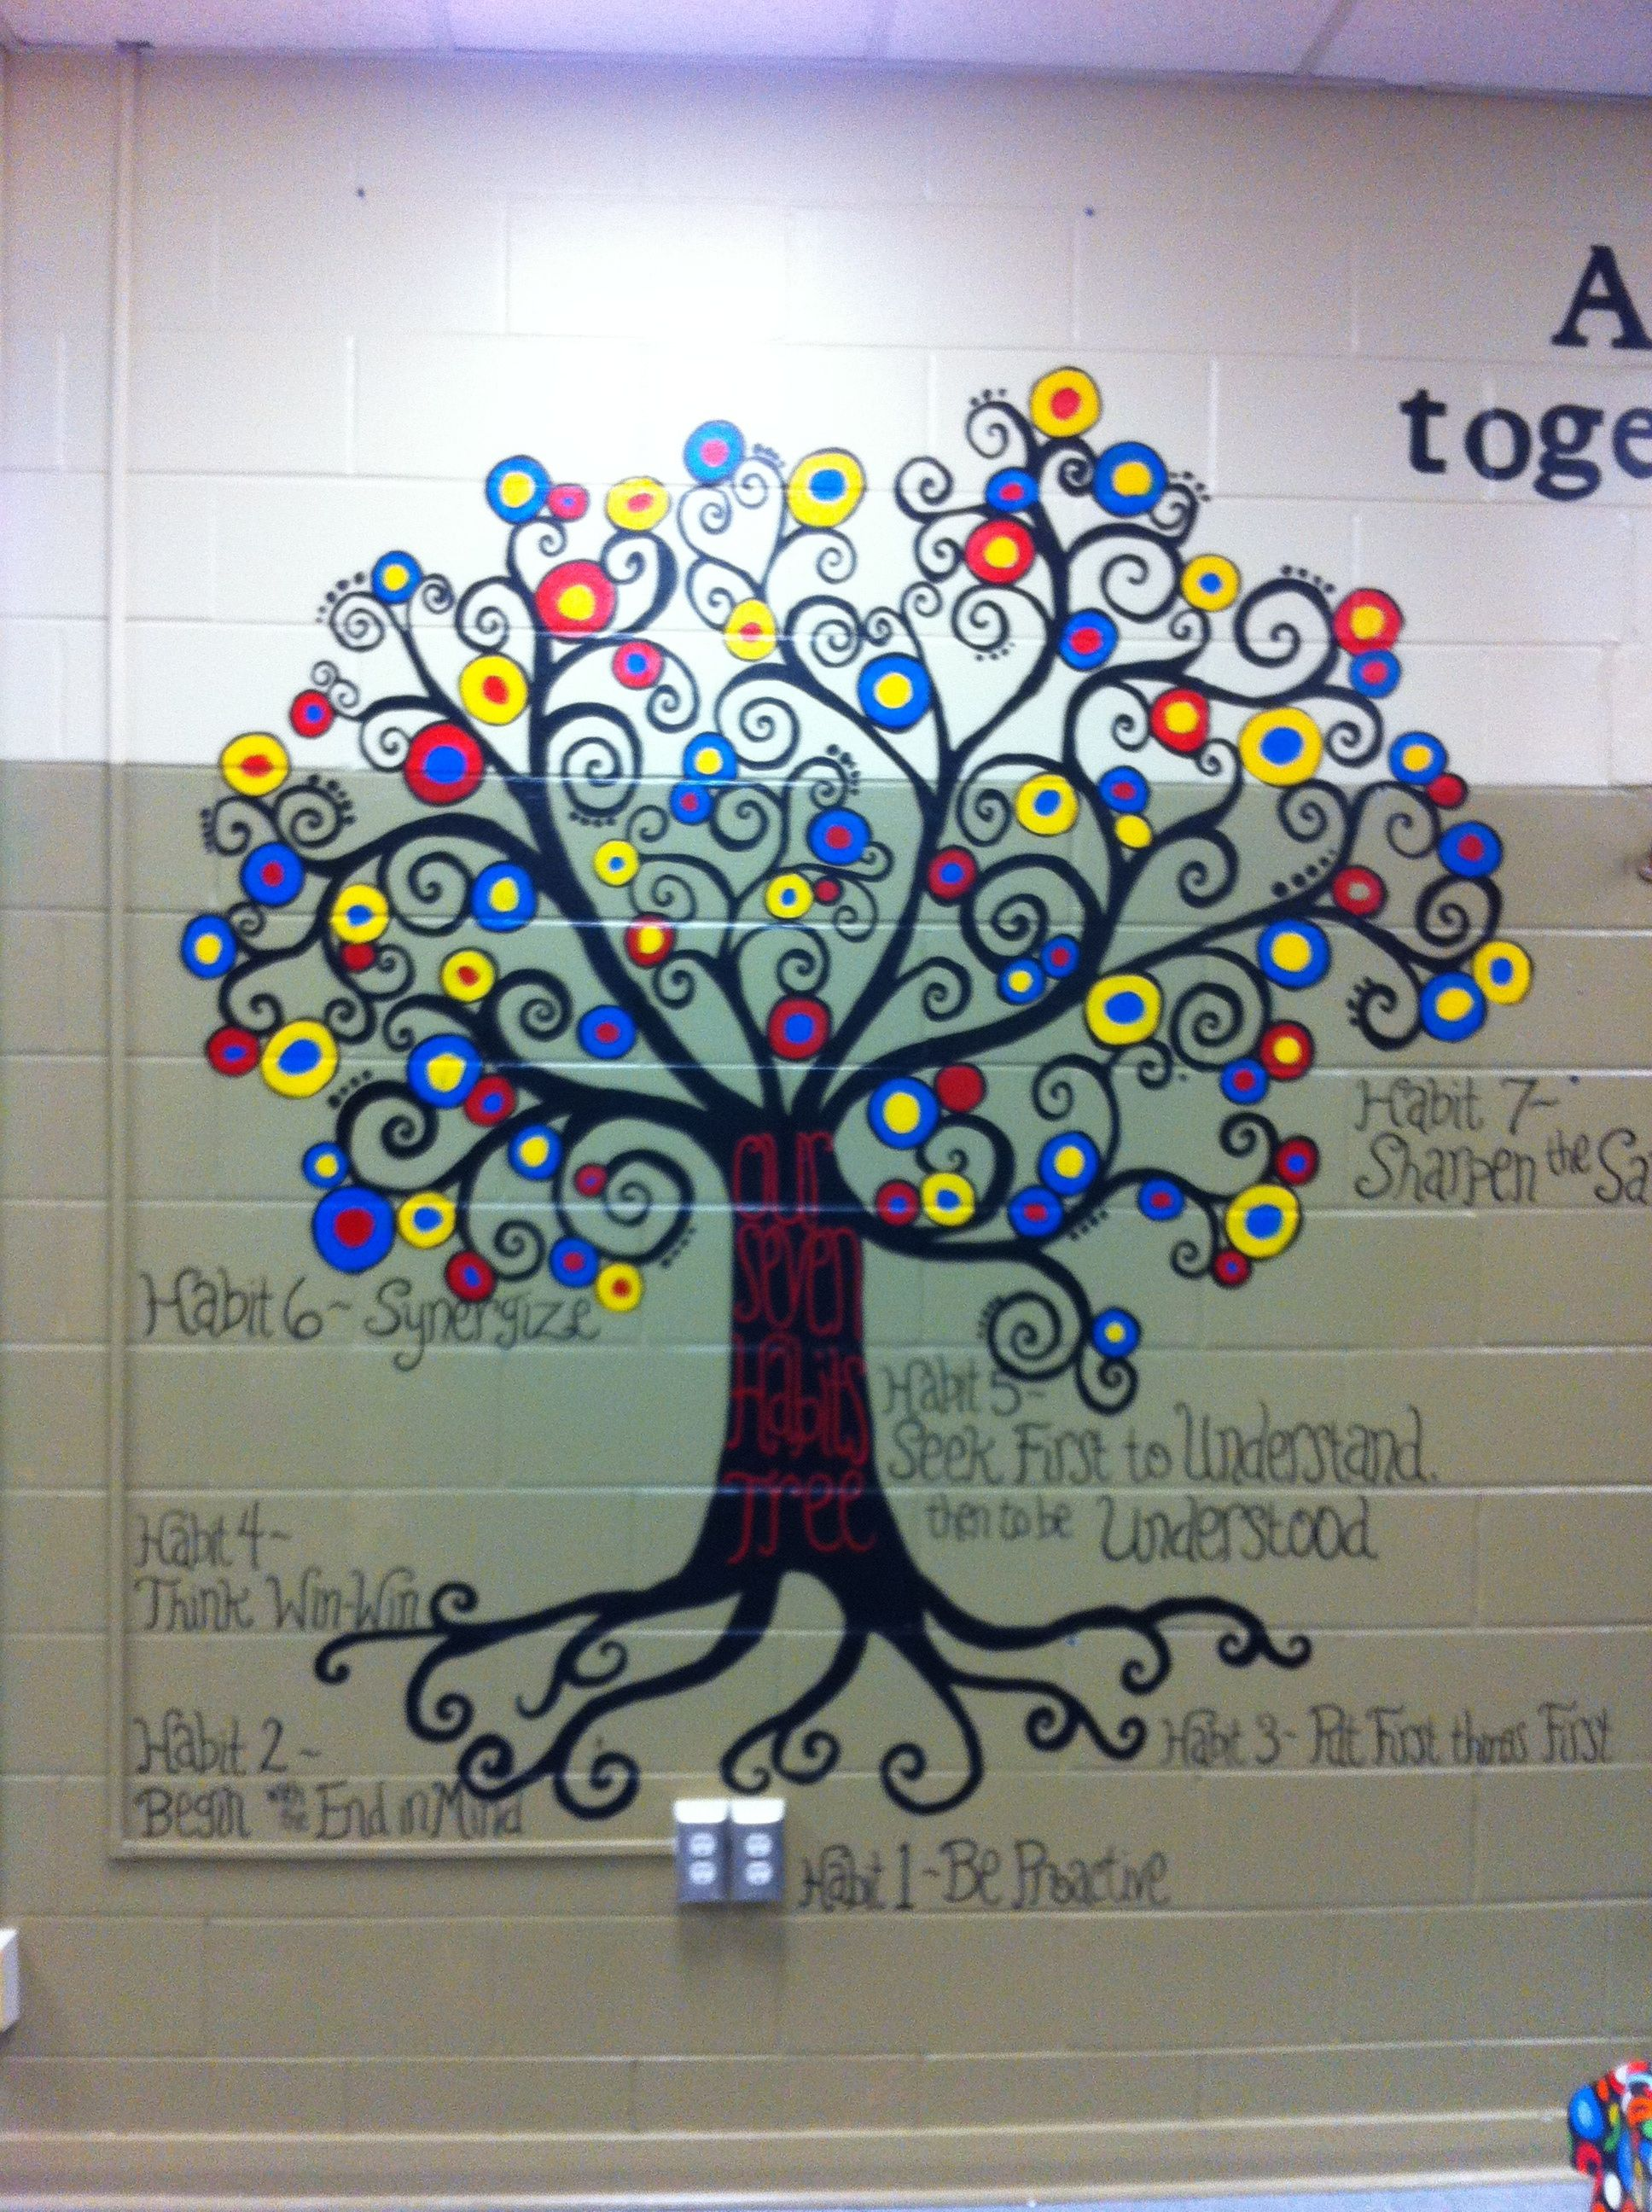 Our New 7 Habits Leader In Me Tree This Was Just Painted In Our School